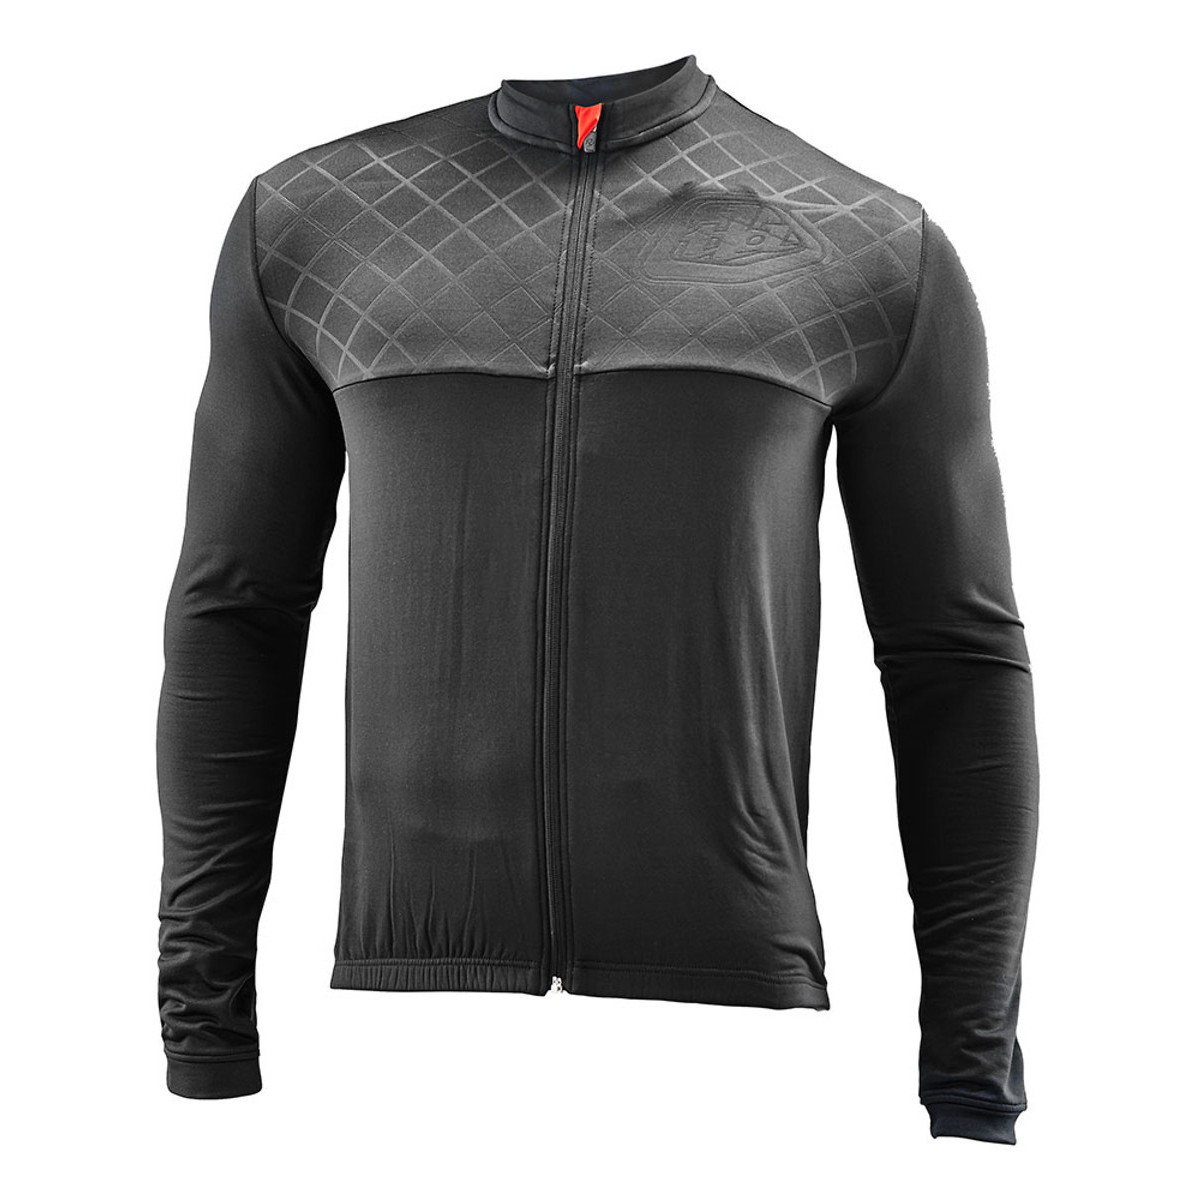 TLD Aace Thermal Jersey